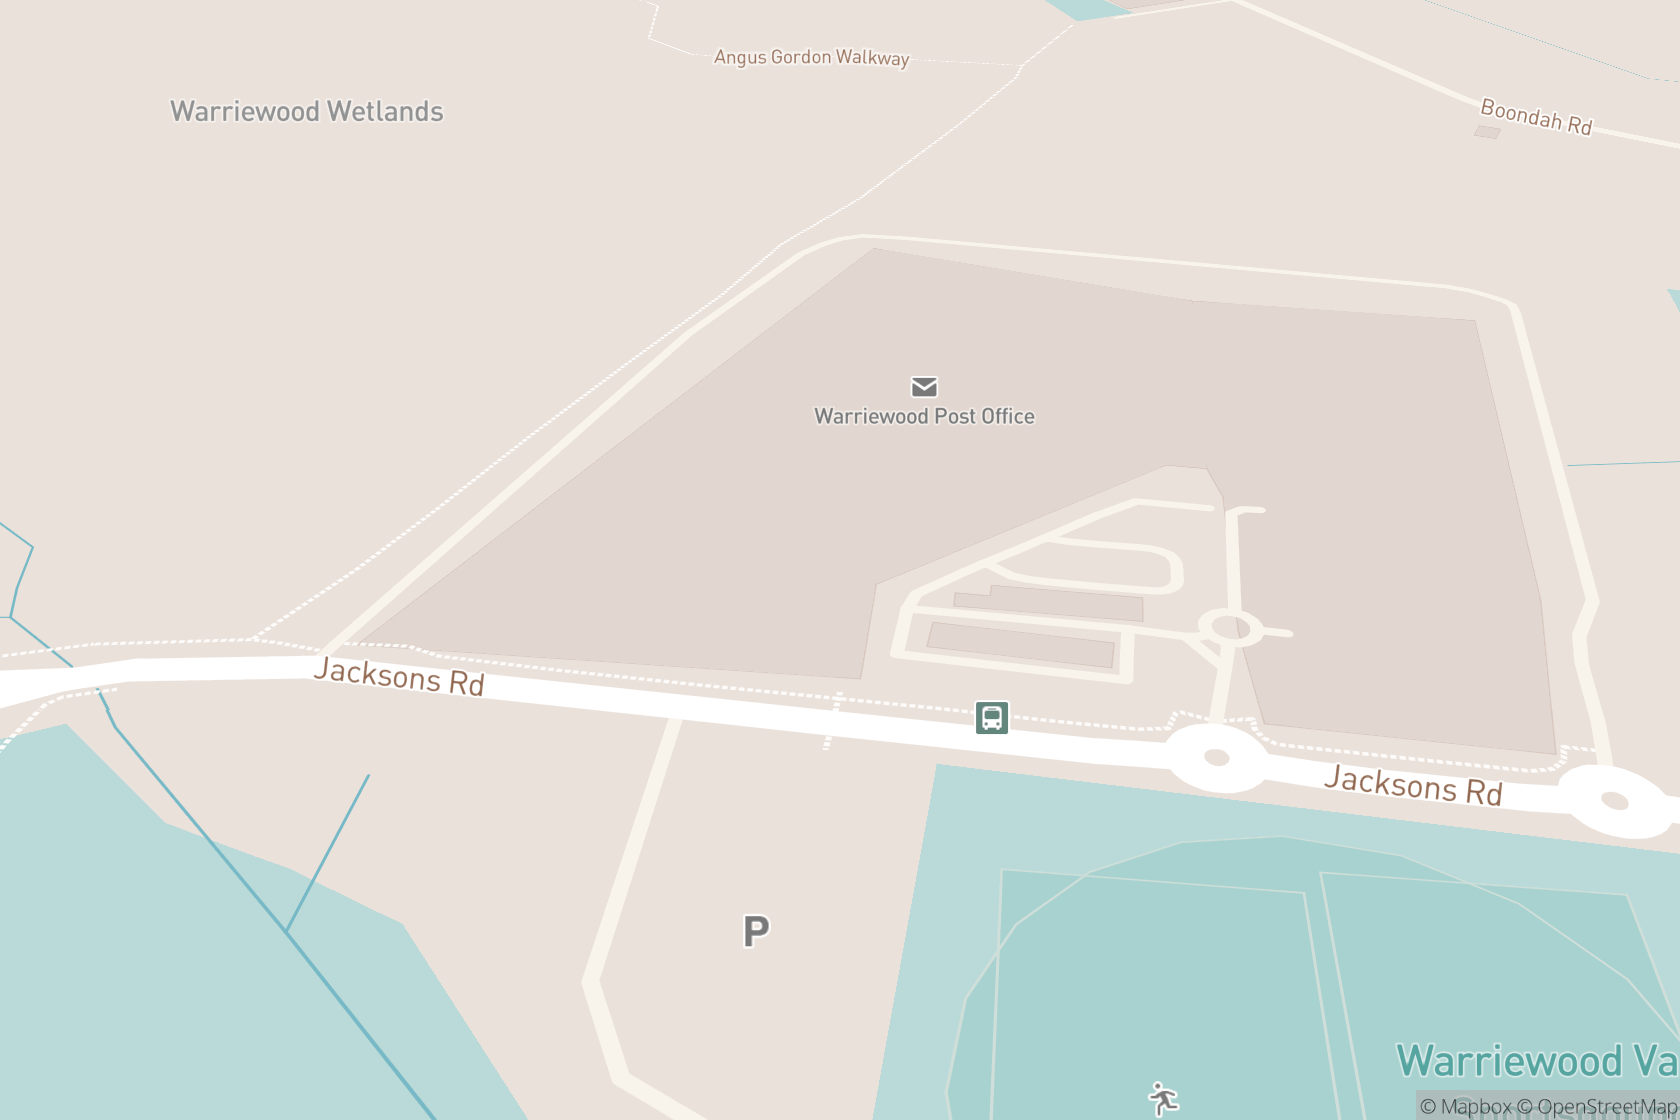 Laser Clinics Australia - Warriewood Square map location